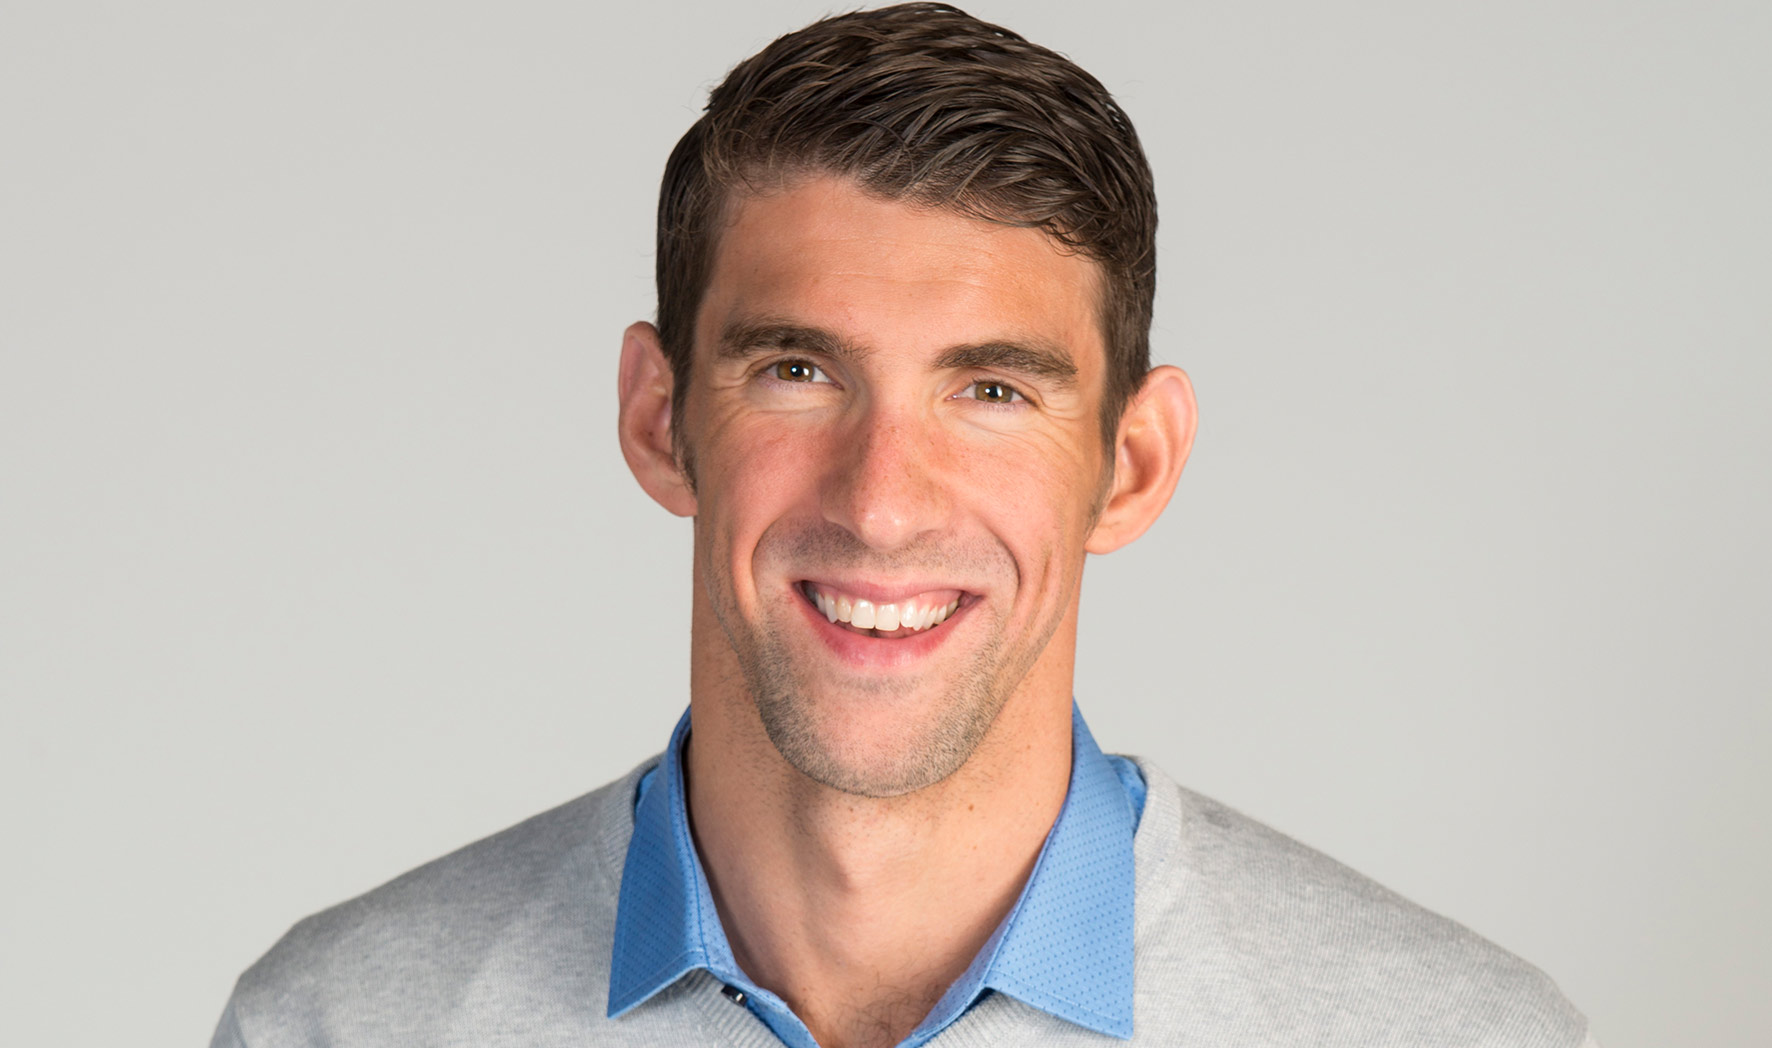 More Info for Michael Phelps